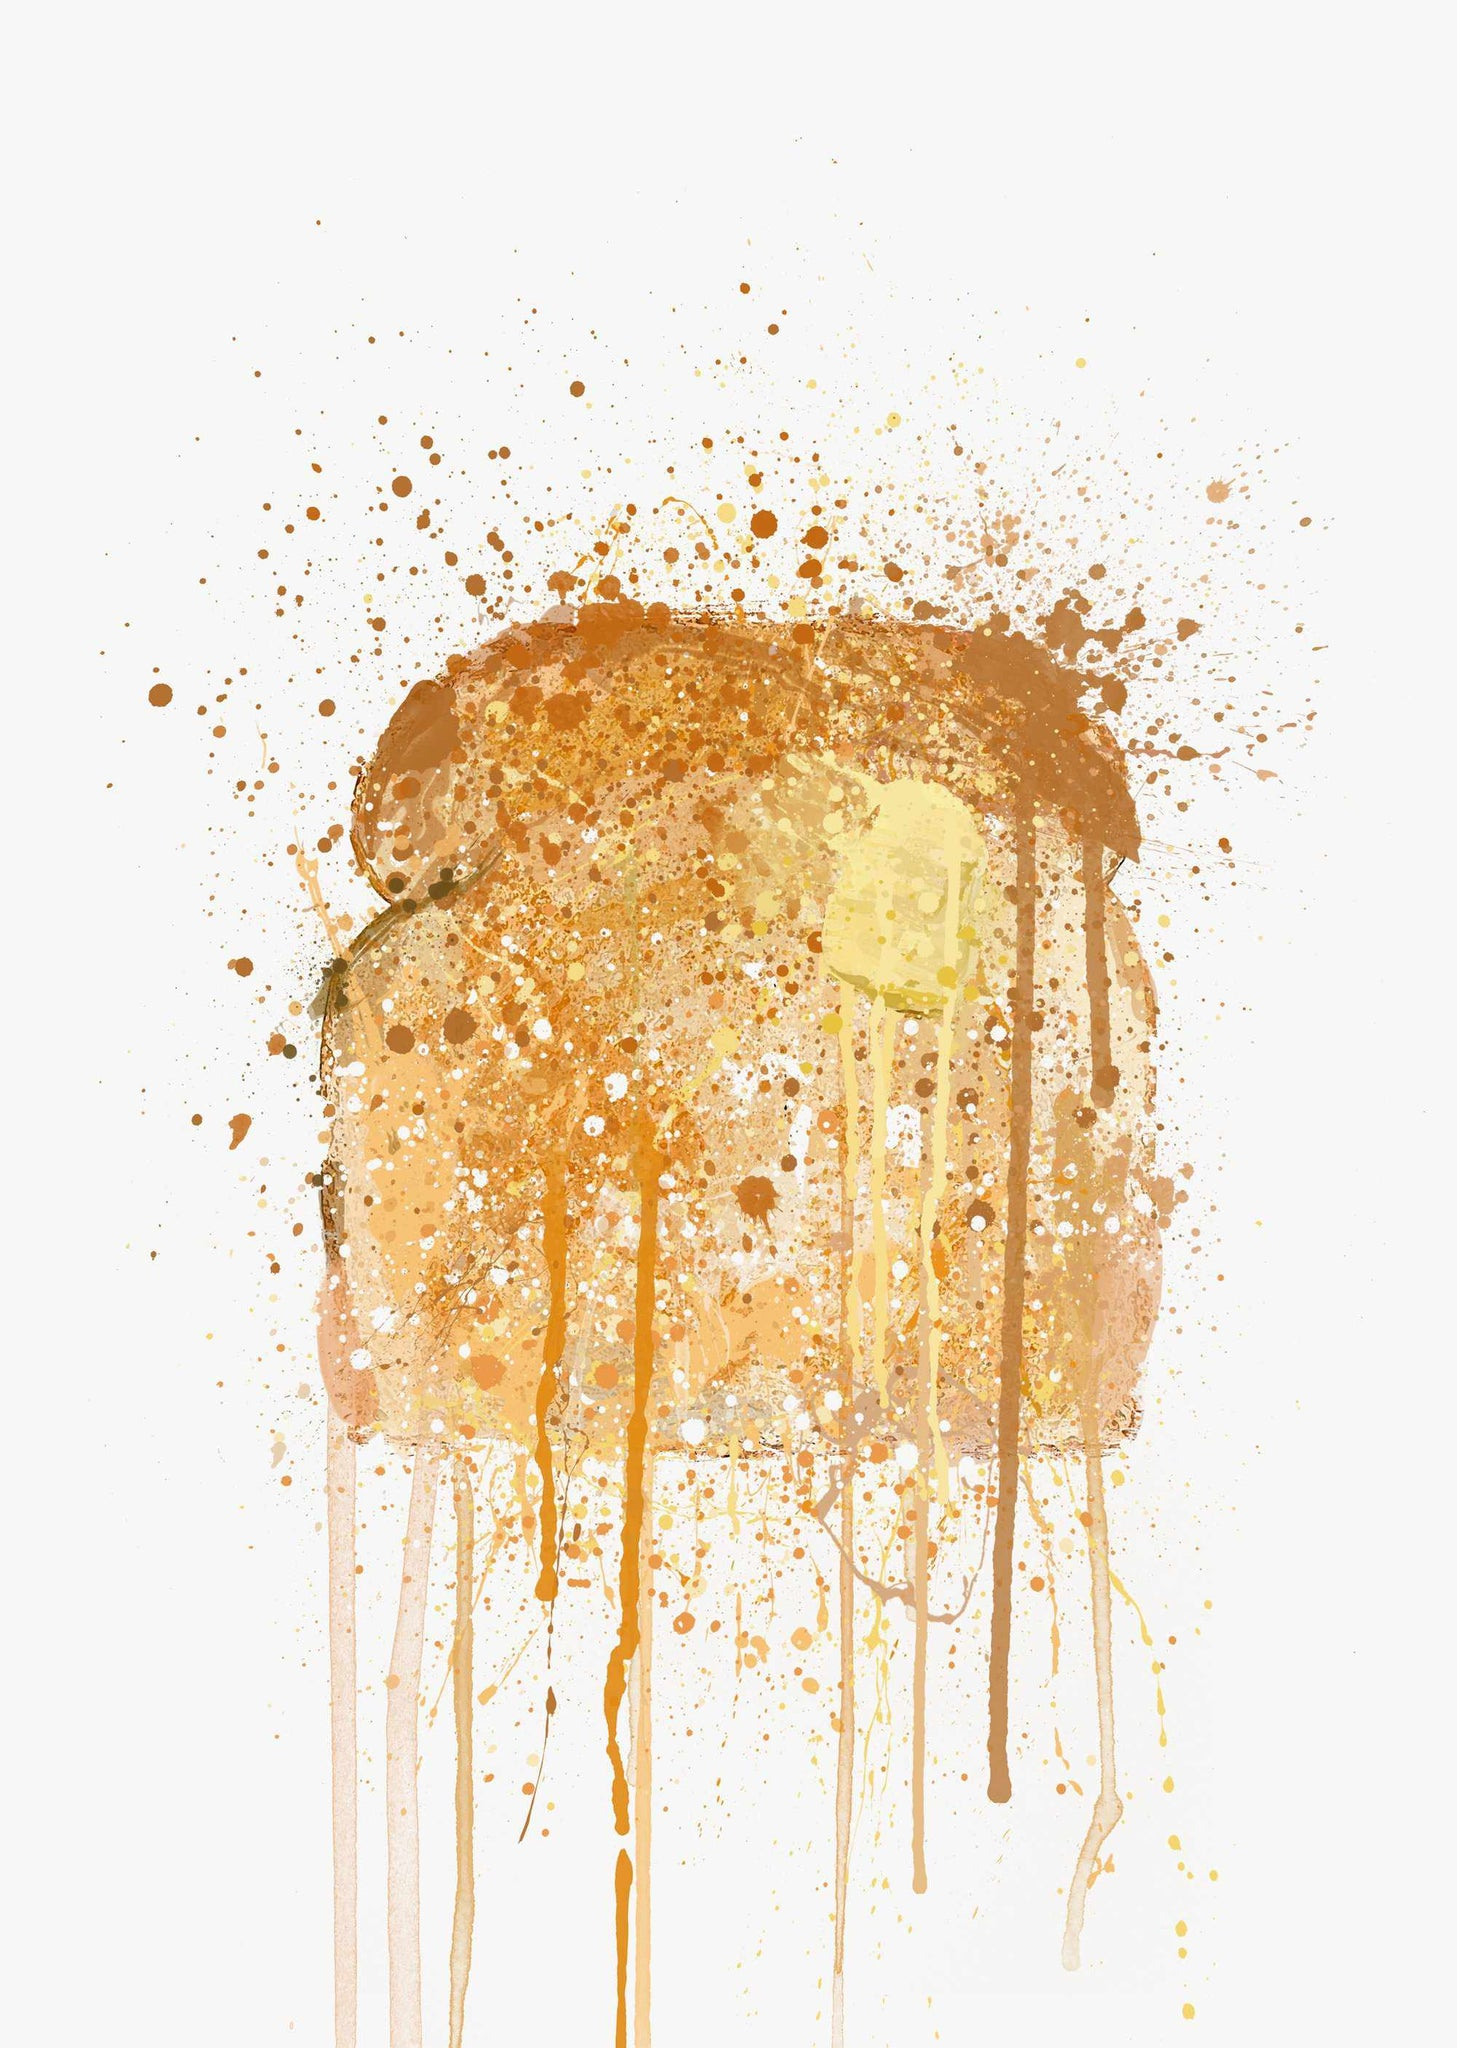 Buttered Toast Wall Art Print-We Love Prints